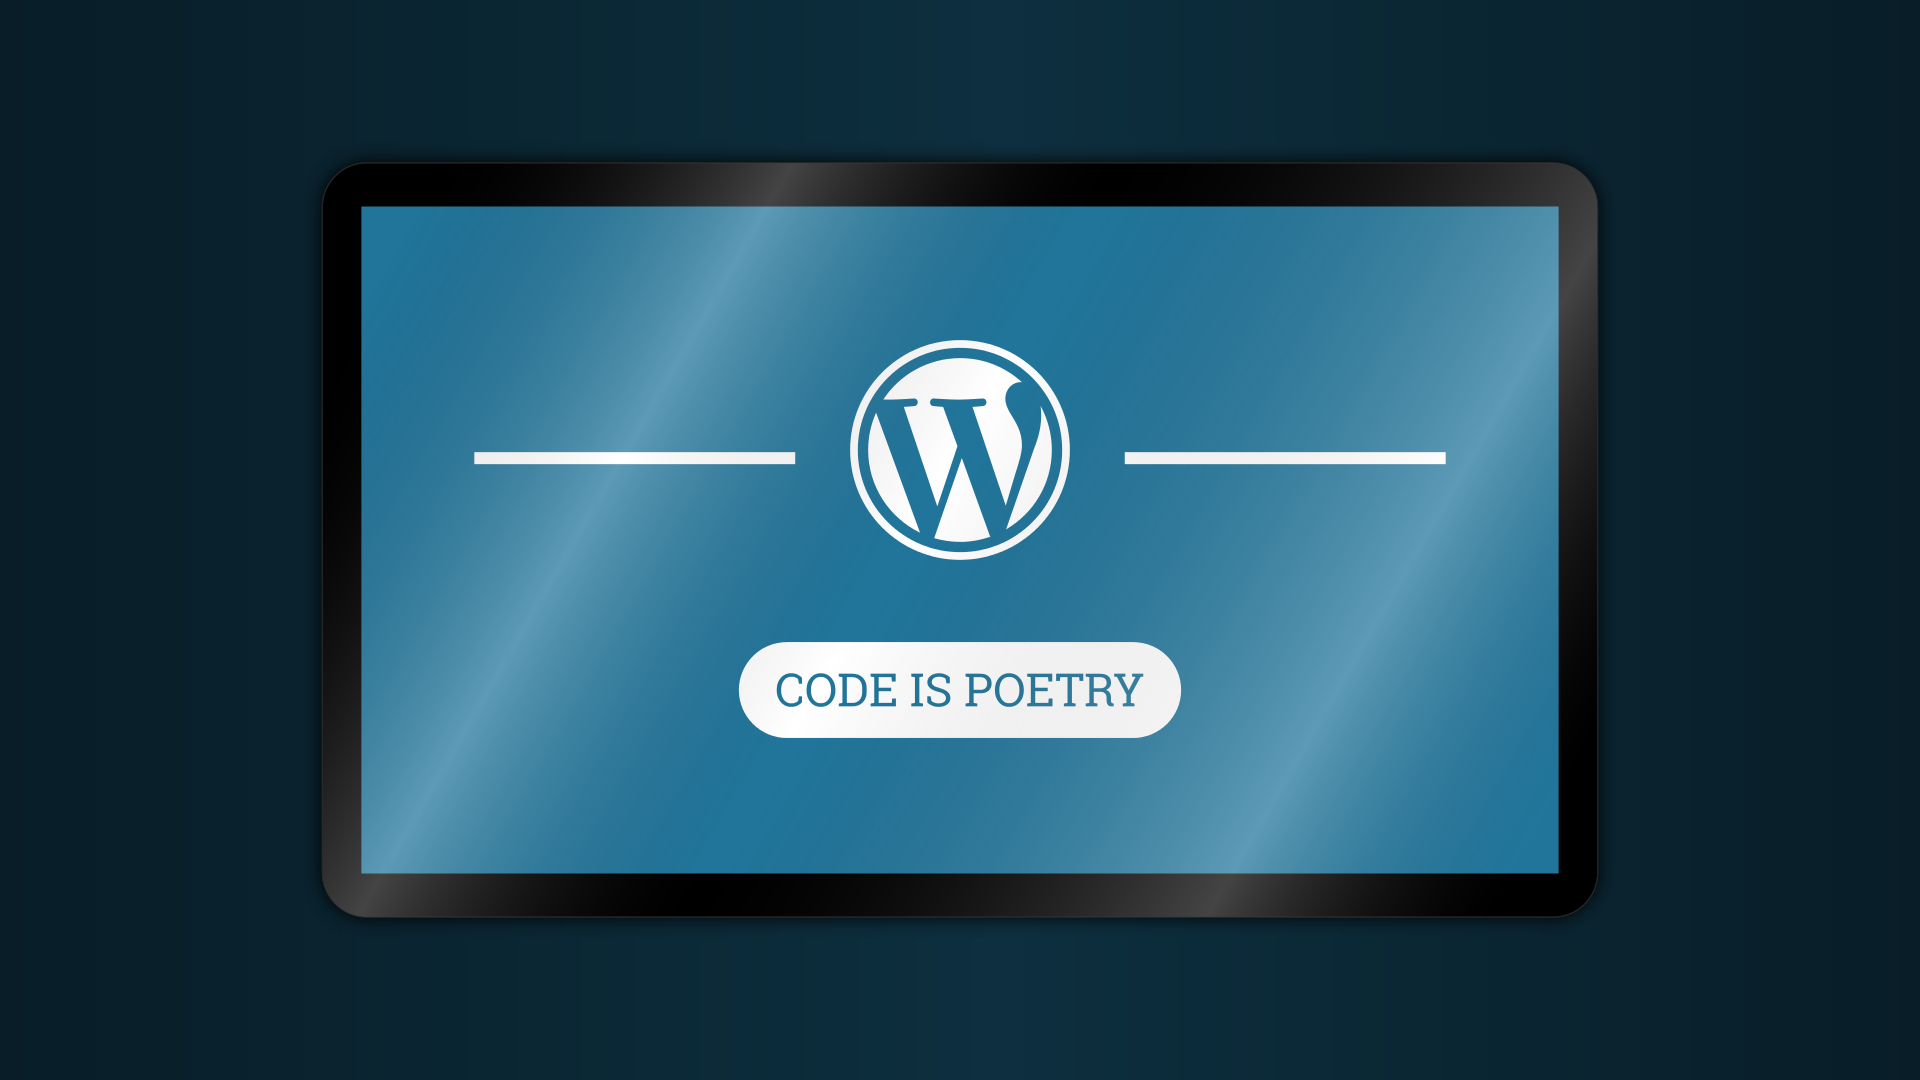 wordpress - code is poetry - banner